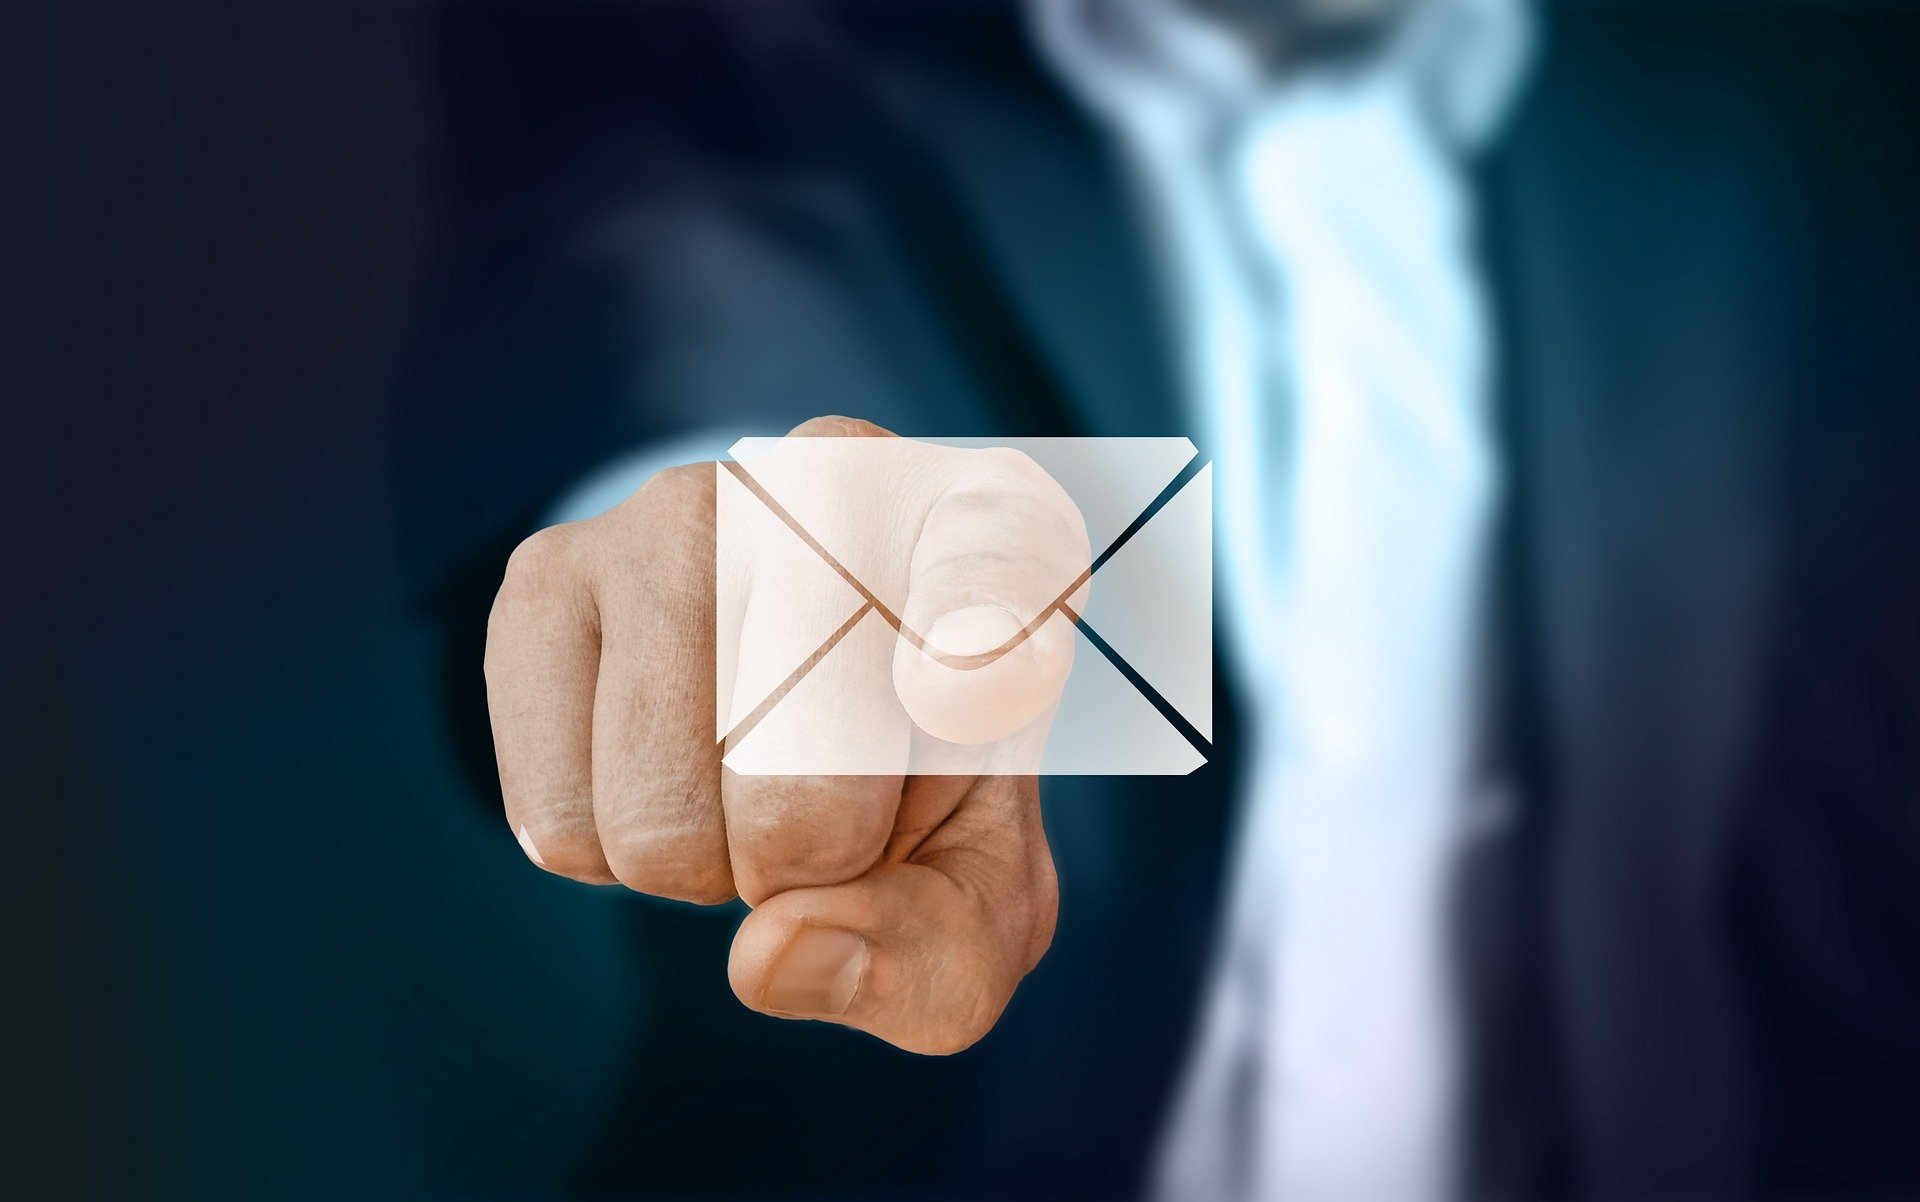 Business man pointing at an envelope